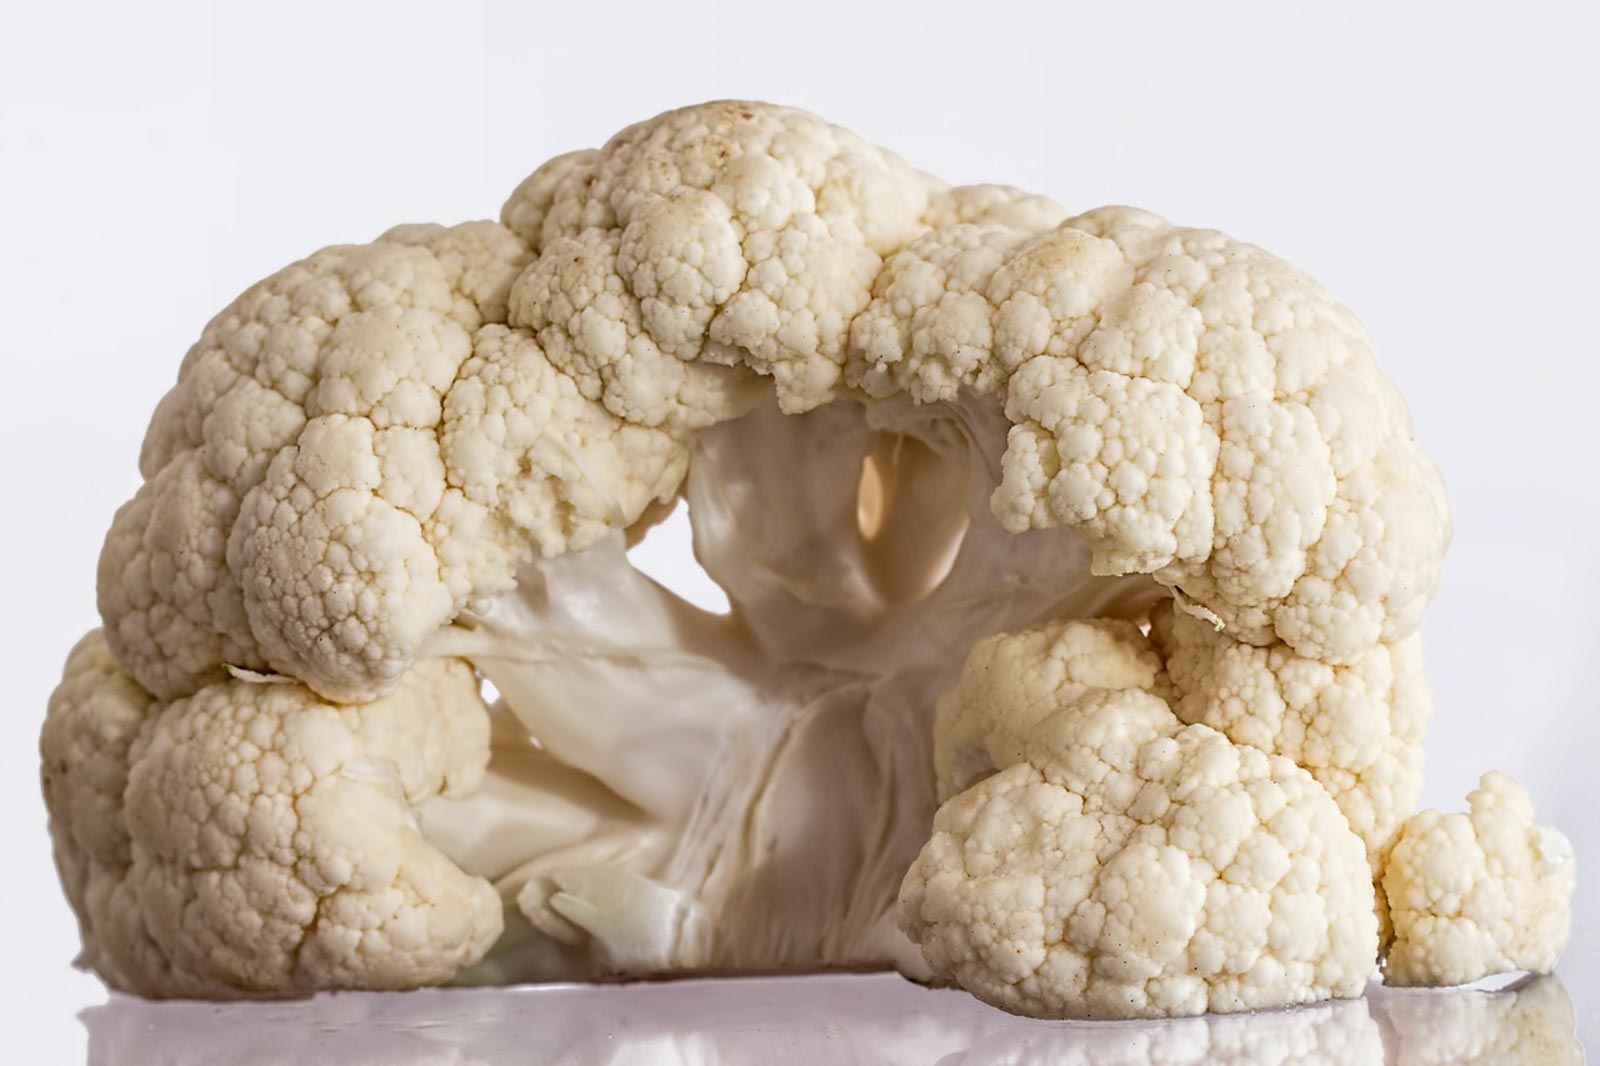 cauliflower-849643_1280